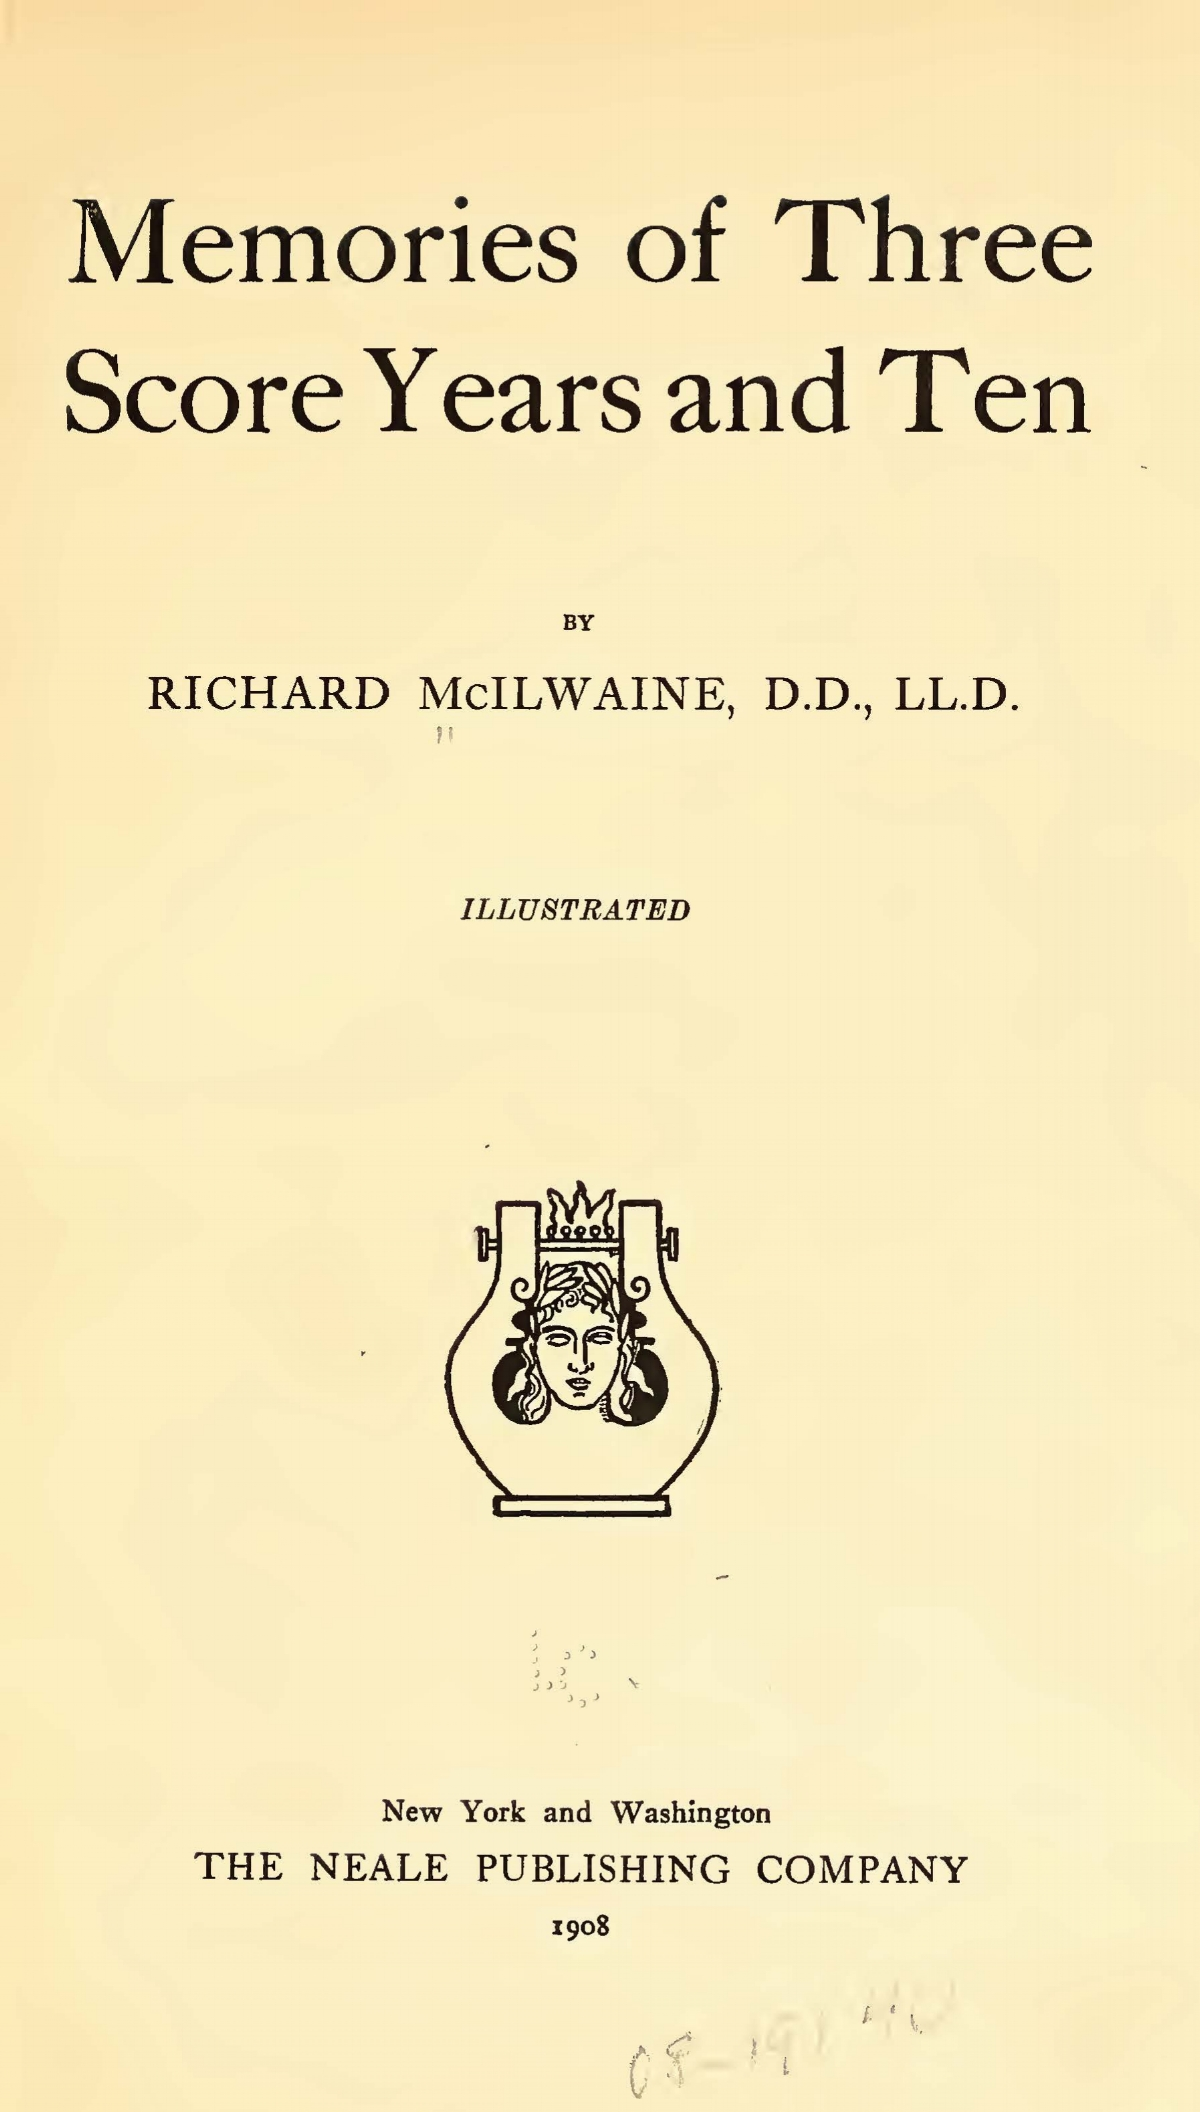 McIlwaine, Richard, Memories of Three Score Years and Ten Title Page.jpg